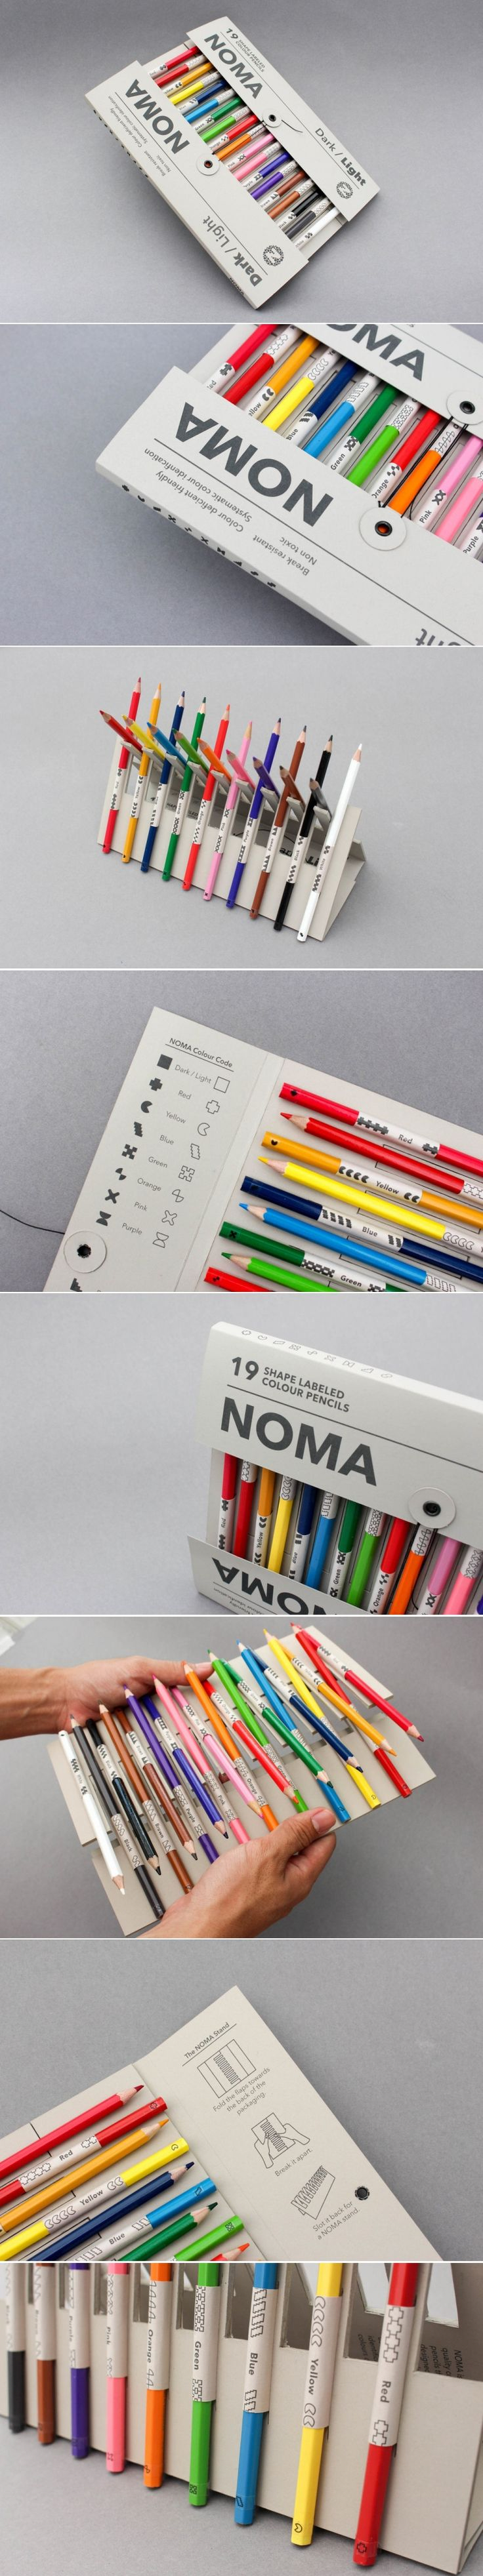 This Concept Aims To Make Choosing a Colored Pencil Easier for Those Who Are Colorblind — The Dieline | Packaging & Branding Design & Innovation New